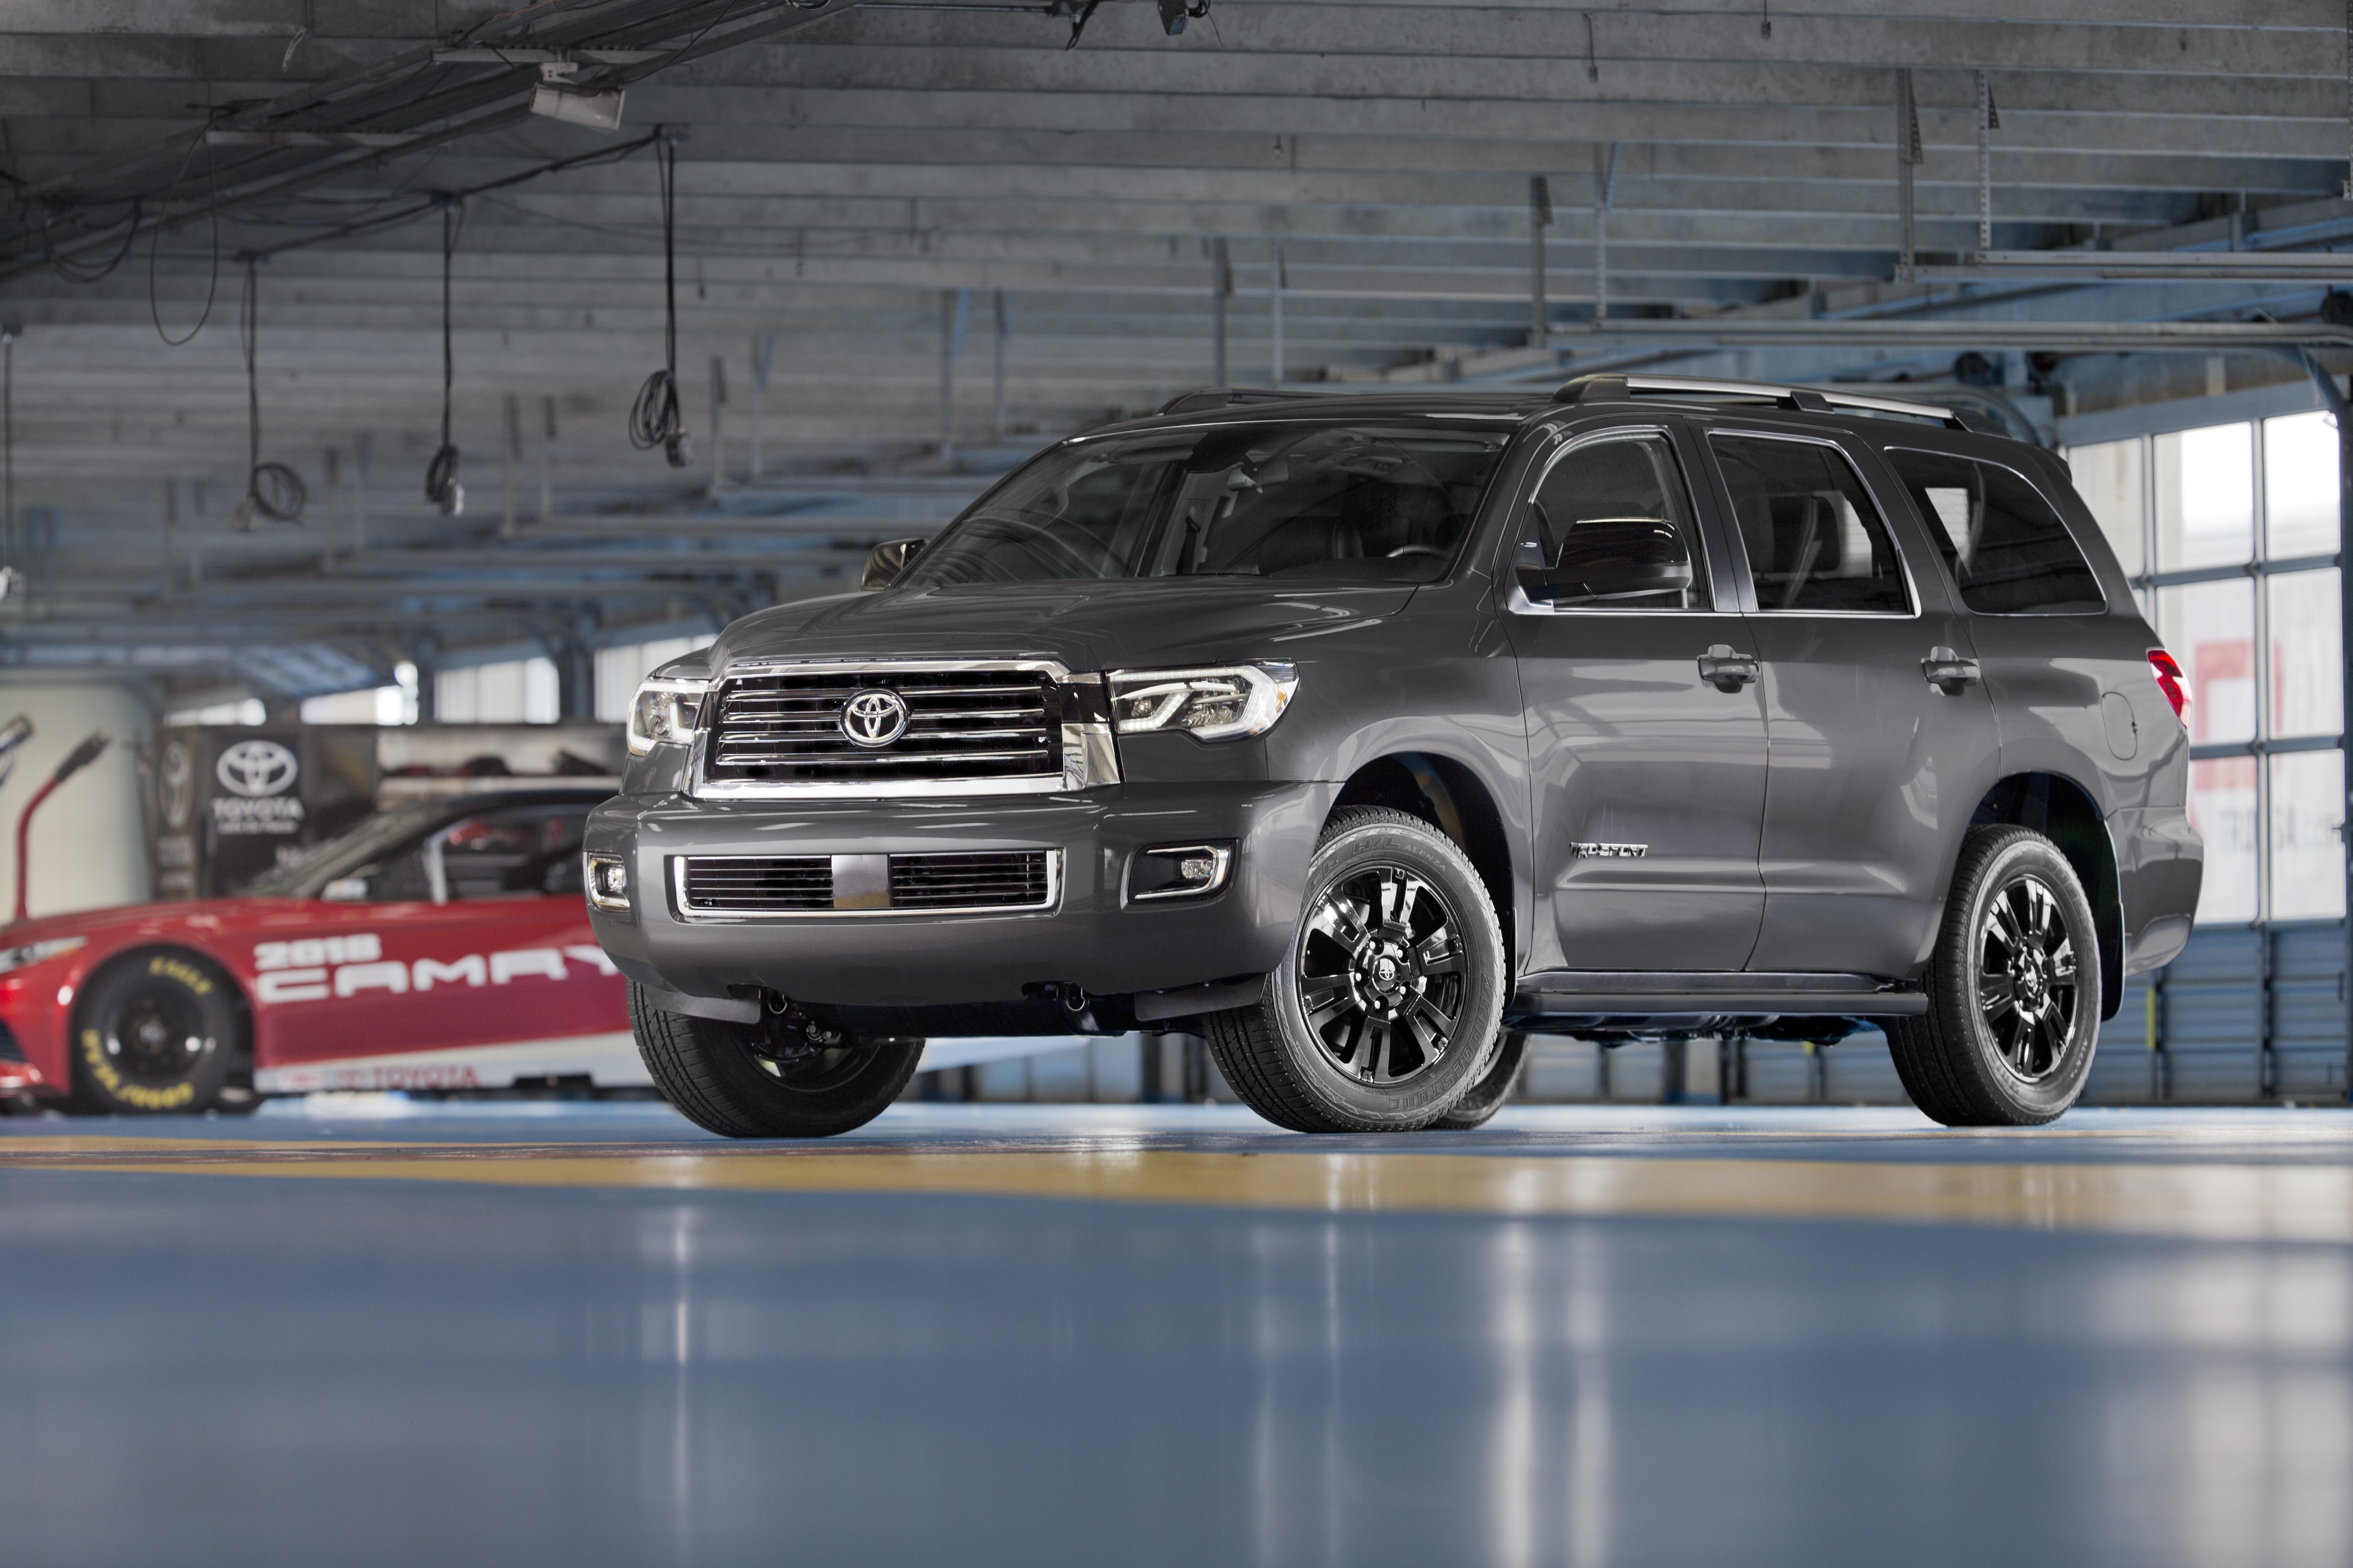 power sequoia toyota s all used new trd latest kelley for book car news name revealed more blue fr scion the sport